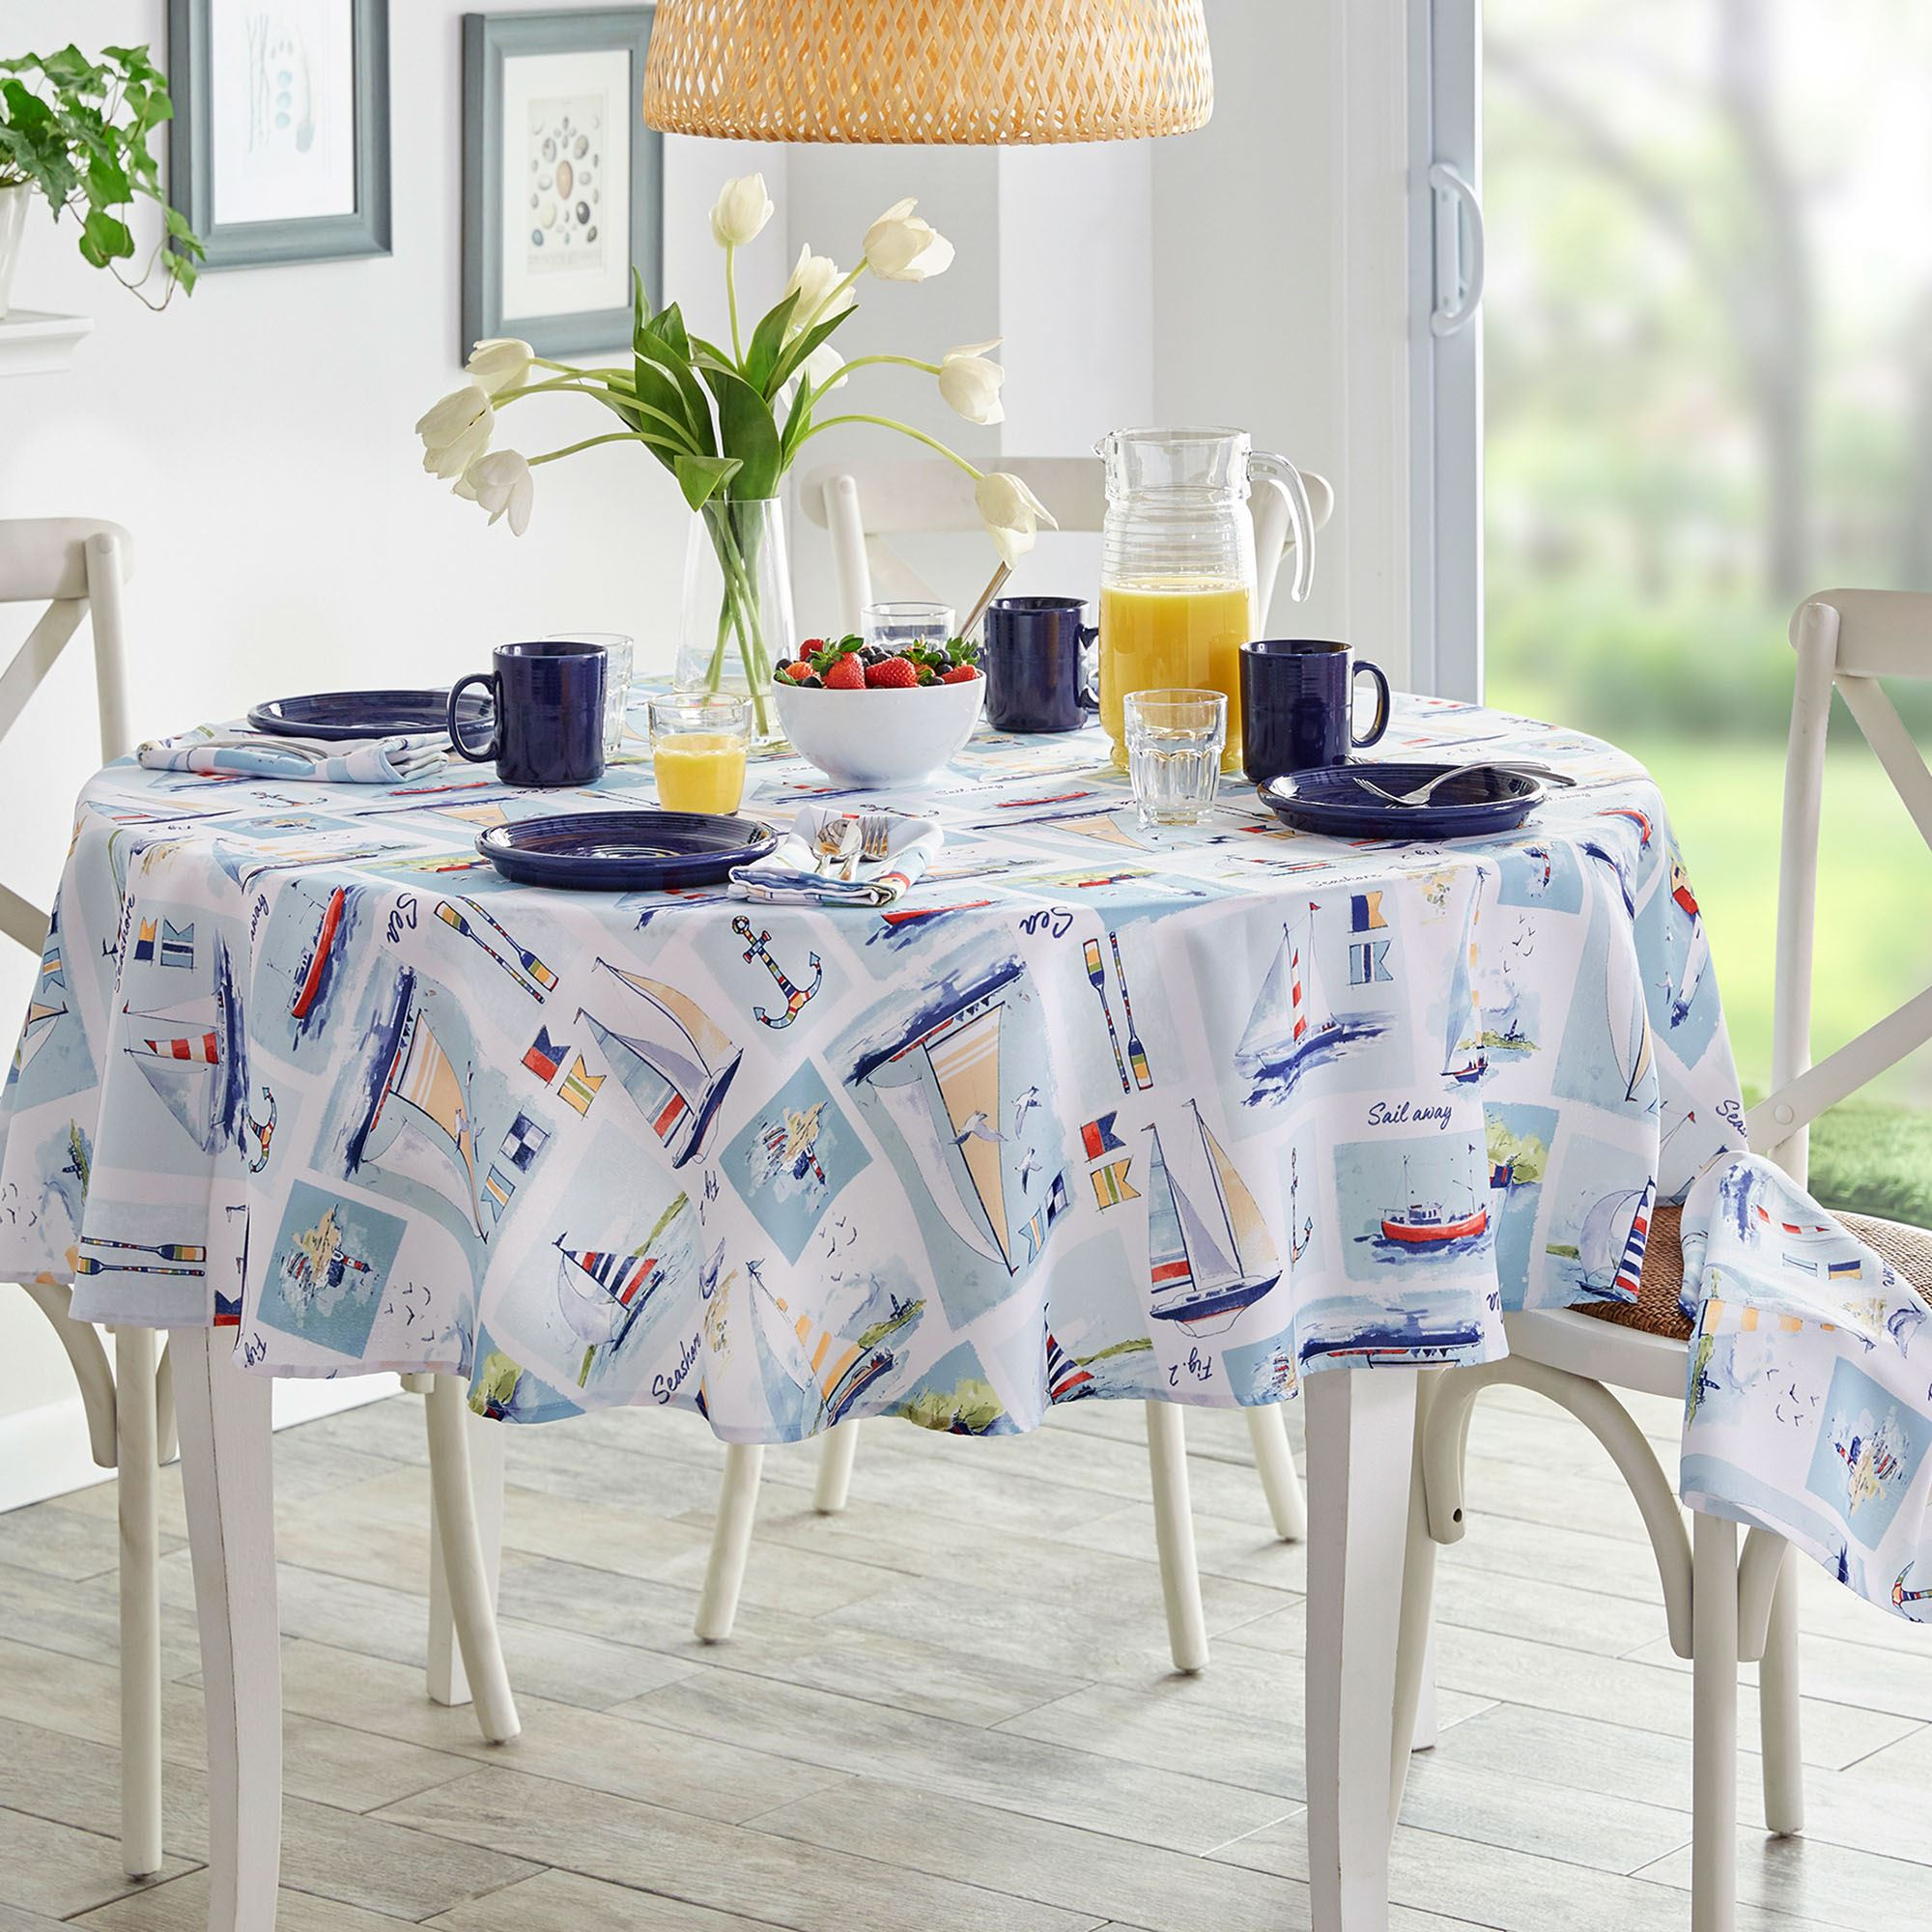 Set Sail Nautical Stain And Water Resistant Indoor Outdoor Table Linens